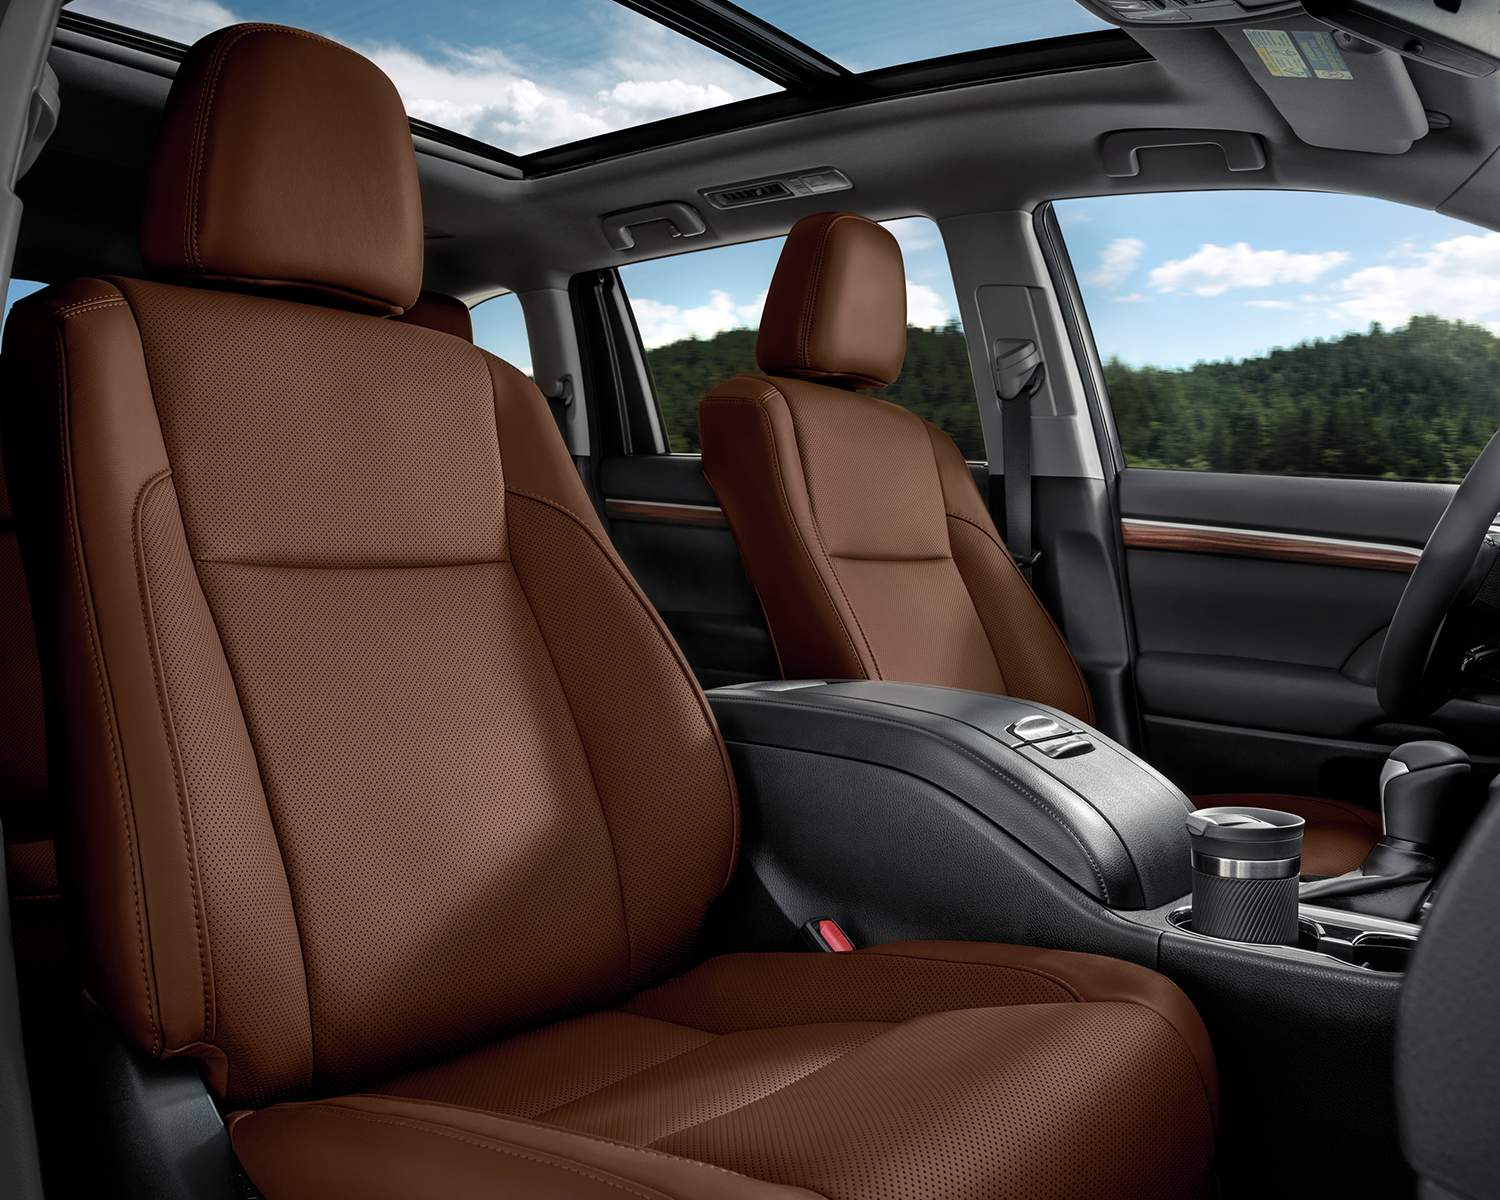 toyota-2018-highlander-hybrid-interior-seating-brown-perforated-leather-l